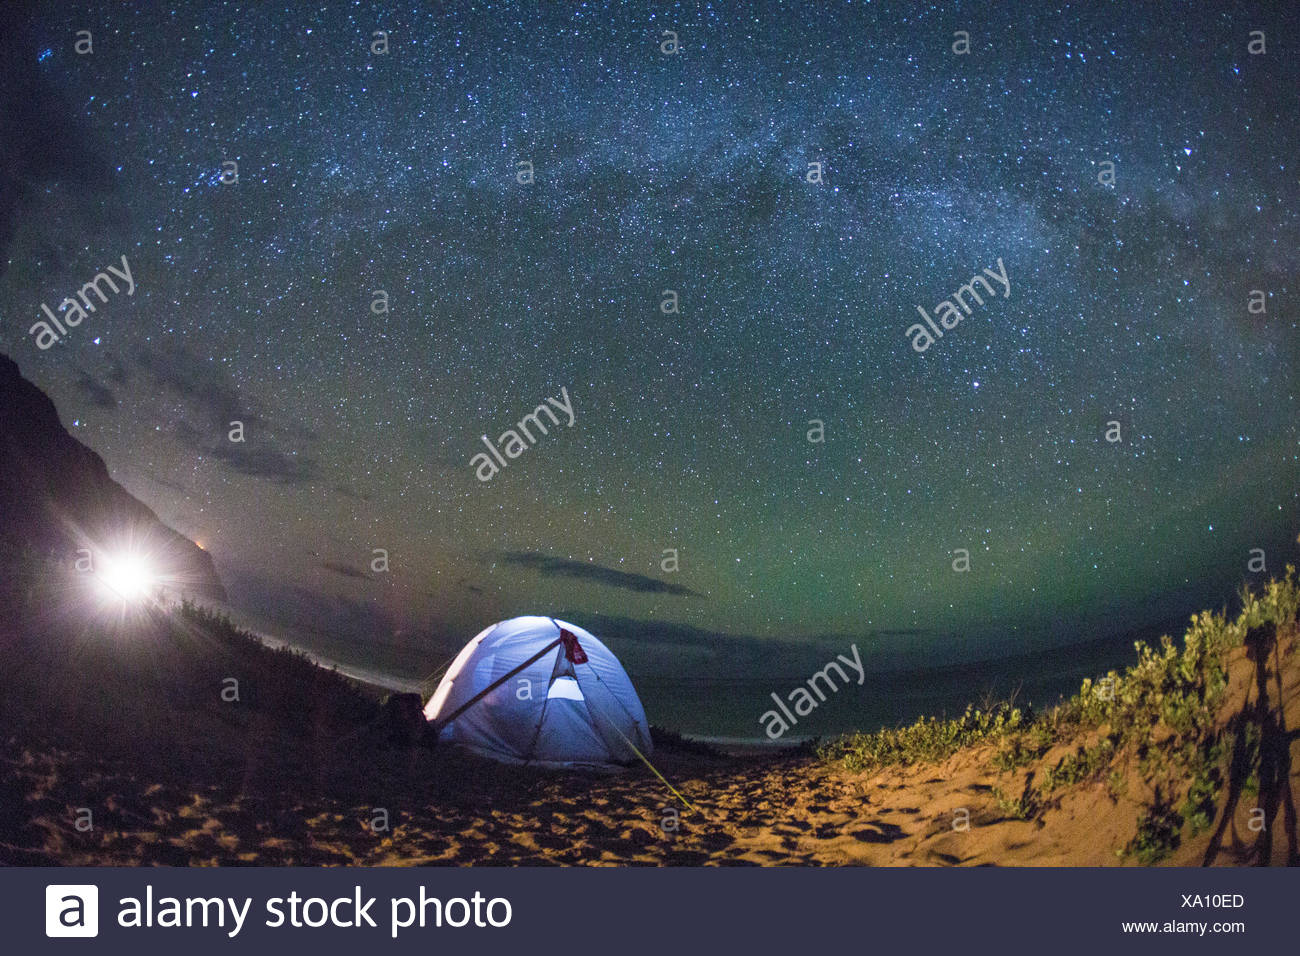 Kauai,camping,Kauai,star sky,stars,evening,Astro,USA,Hawaii,America, - Stock Image